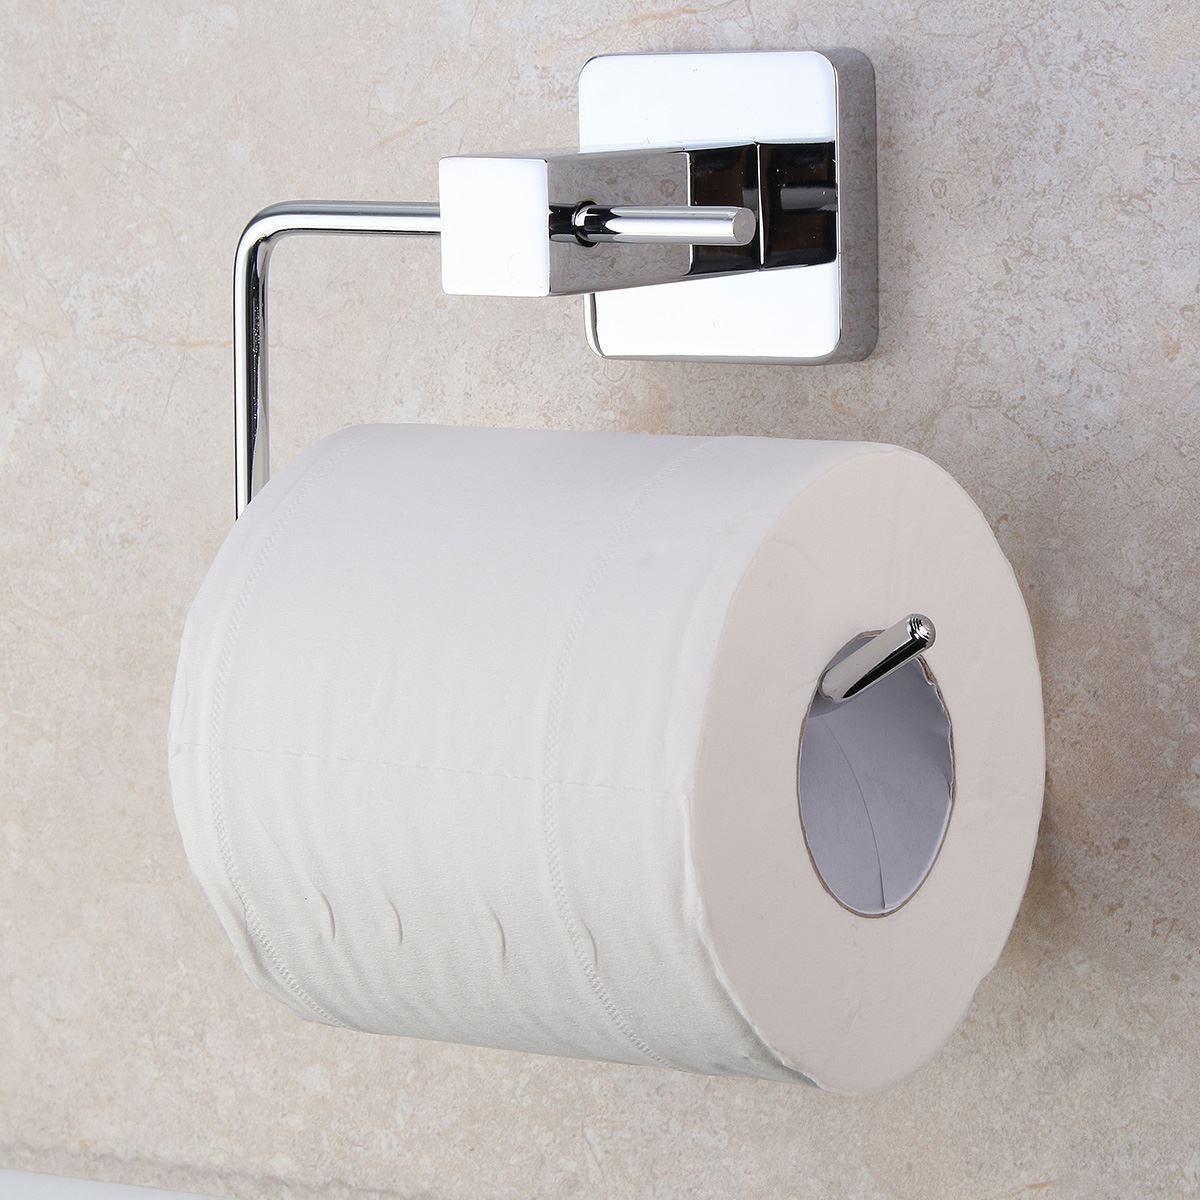 14x10cm Stainless Steel Paper Roll Tissue Holder Towel Hook Bar Wall  Mounted Chrome Plated Bathroom Toilet. Compare Prices on Tissue Holder Stand  Online Shopping Buy Low